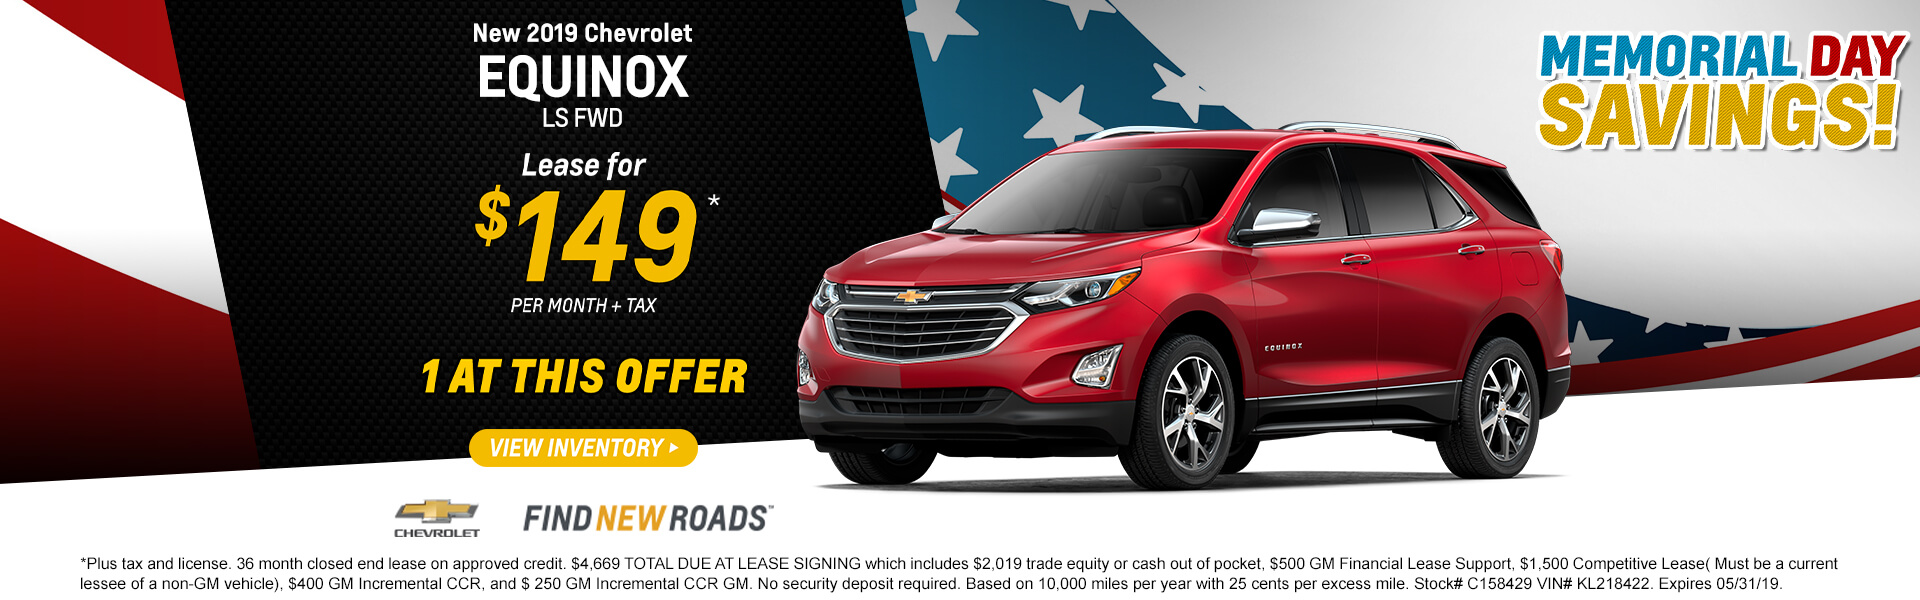 2019 Equinox LS Lease for $149 per month. Plus tax and license. 36 month closed end lease on approved credit. $4,669 TOTAL DUE AT LEASE SIGNING which includes $2,019 trade equity or cash out of pocket, $500 GM Financial Lease Support, $1,500 Competitive Lease( Must be a current lessee of a non-GM vehicle), $400 GM Incremental CCR, and $ 250 GM Incremental CCR GM. No security deposit required. Based on 10,000 miles per year with 25 cents per excess mile. Stock# C158429 VIN# KL218422. Expires 05/31/19.